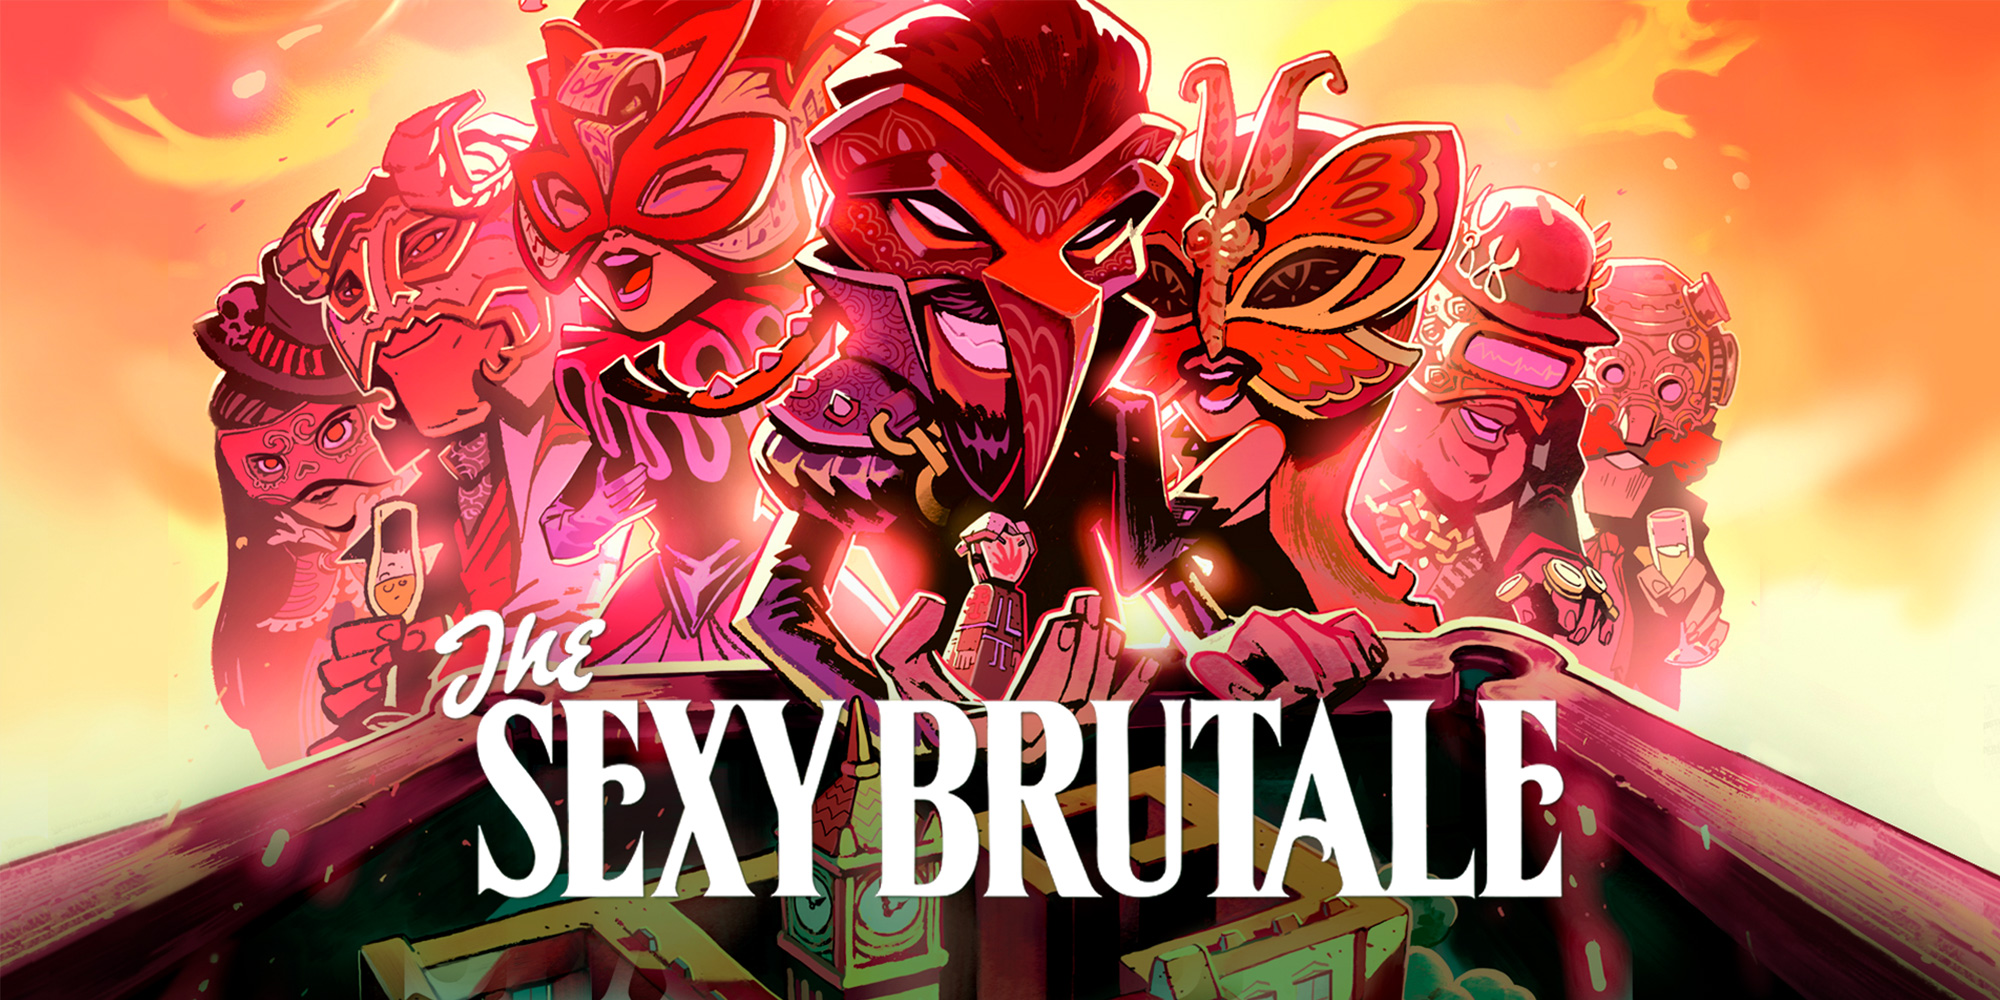 H2x1_NSwitchDS_TheSexyBrutale.jpg